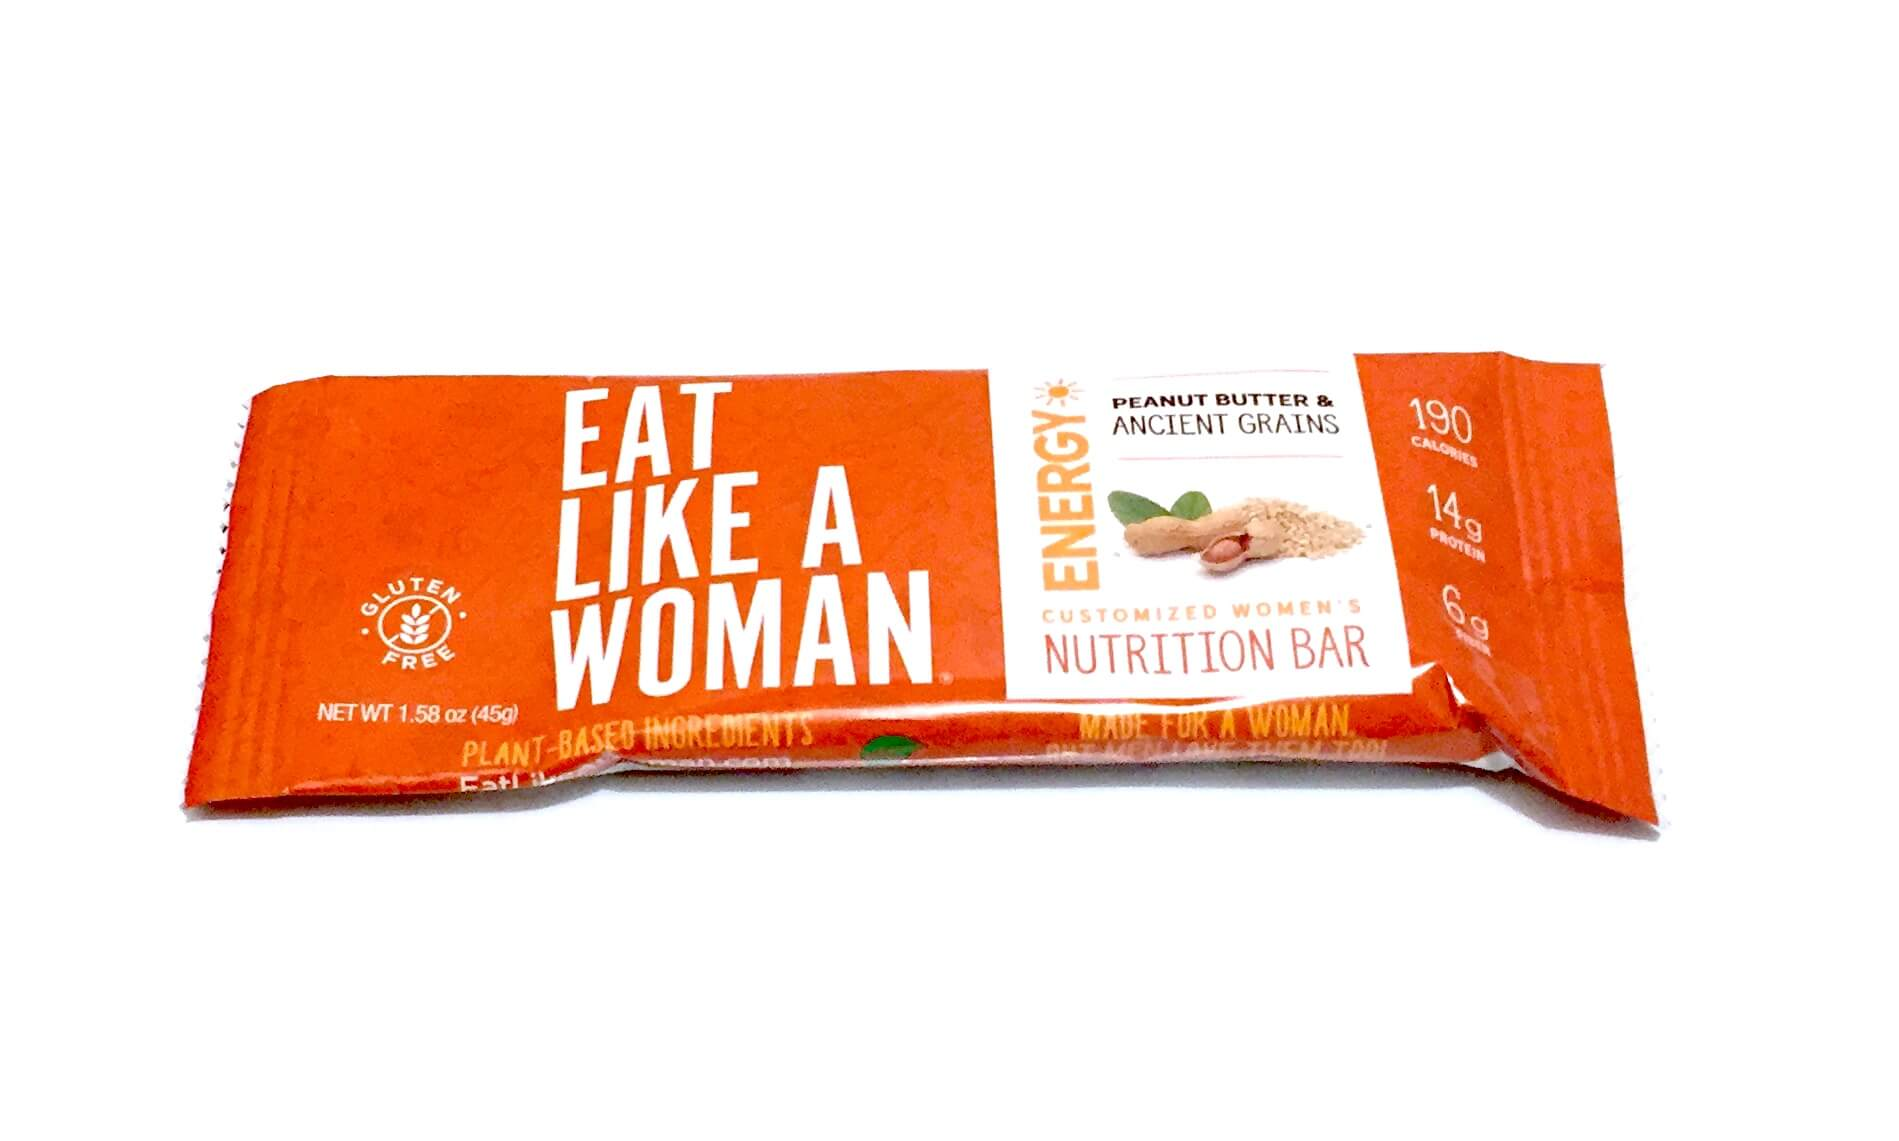 Eat Like a Woman Bar: Peanut Butter and Ancient Grains